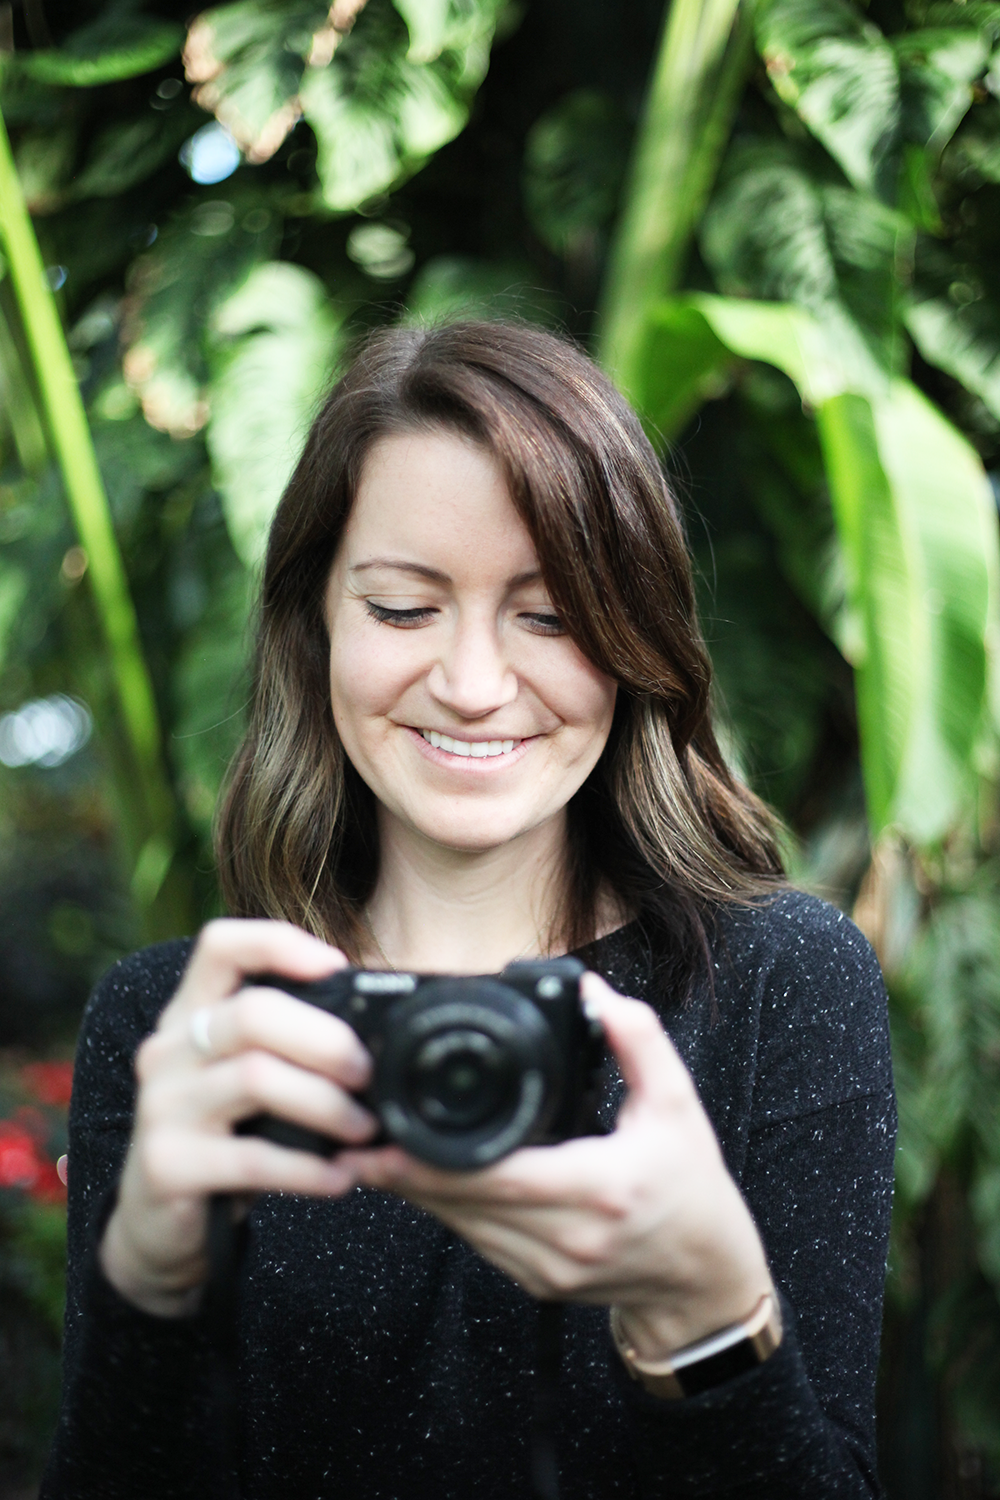 My honest opinion on the Sony A6000 mirrorless camera (spoiler alert: I love it!!)